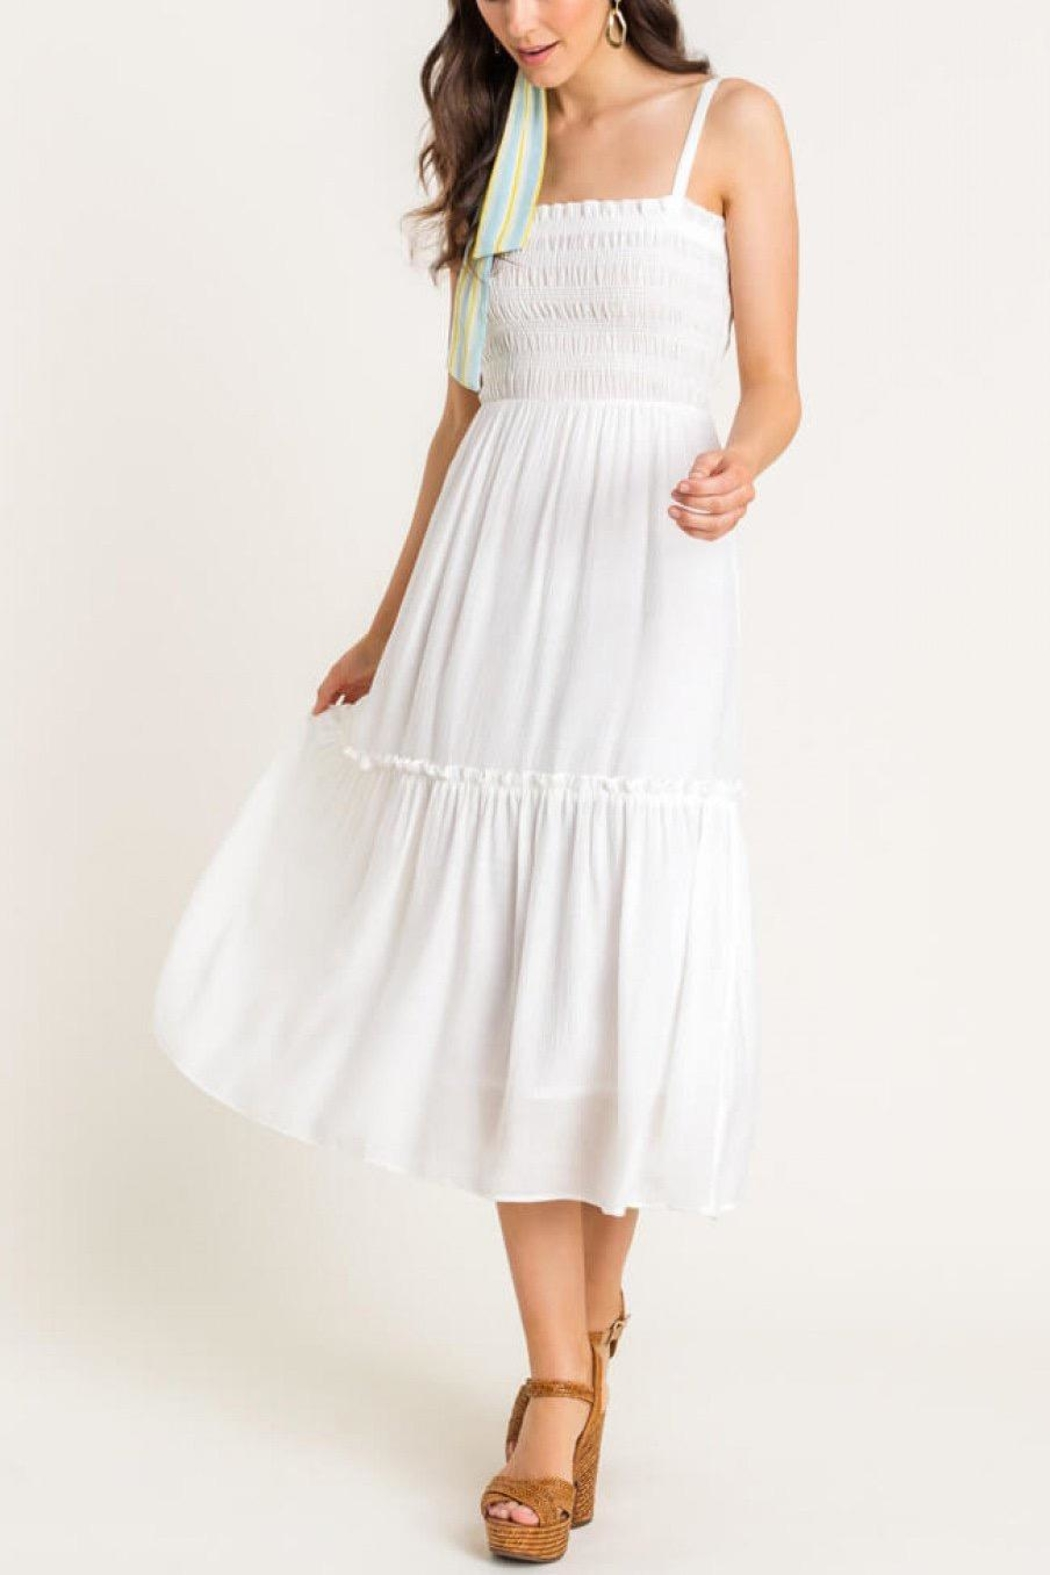 Lush Clothing  Cami Tiered Midi-Dress - Front Full Image